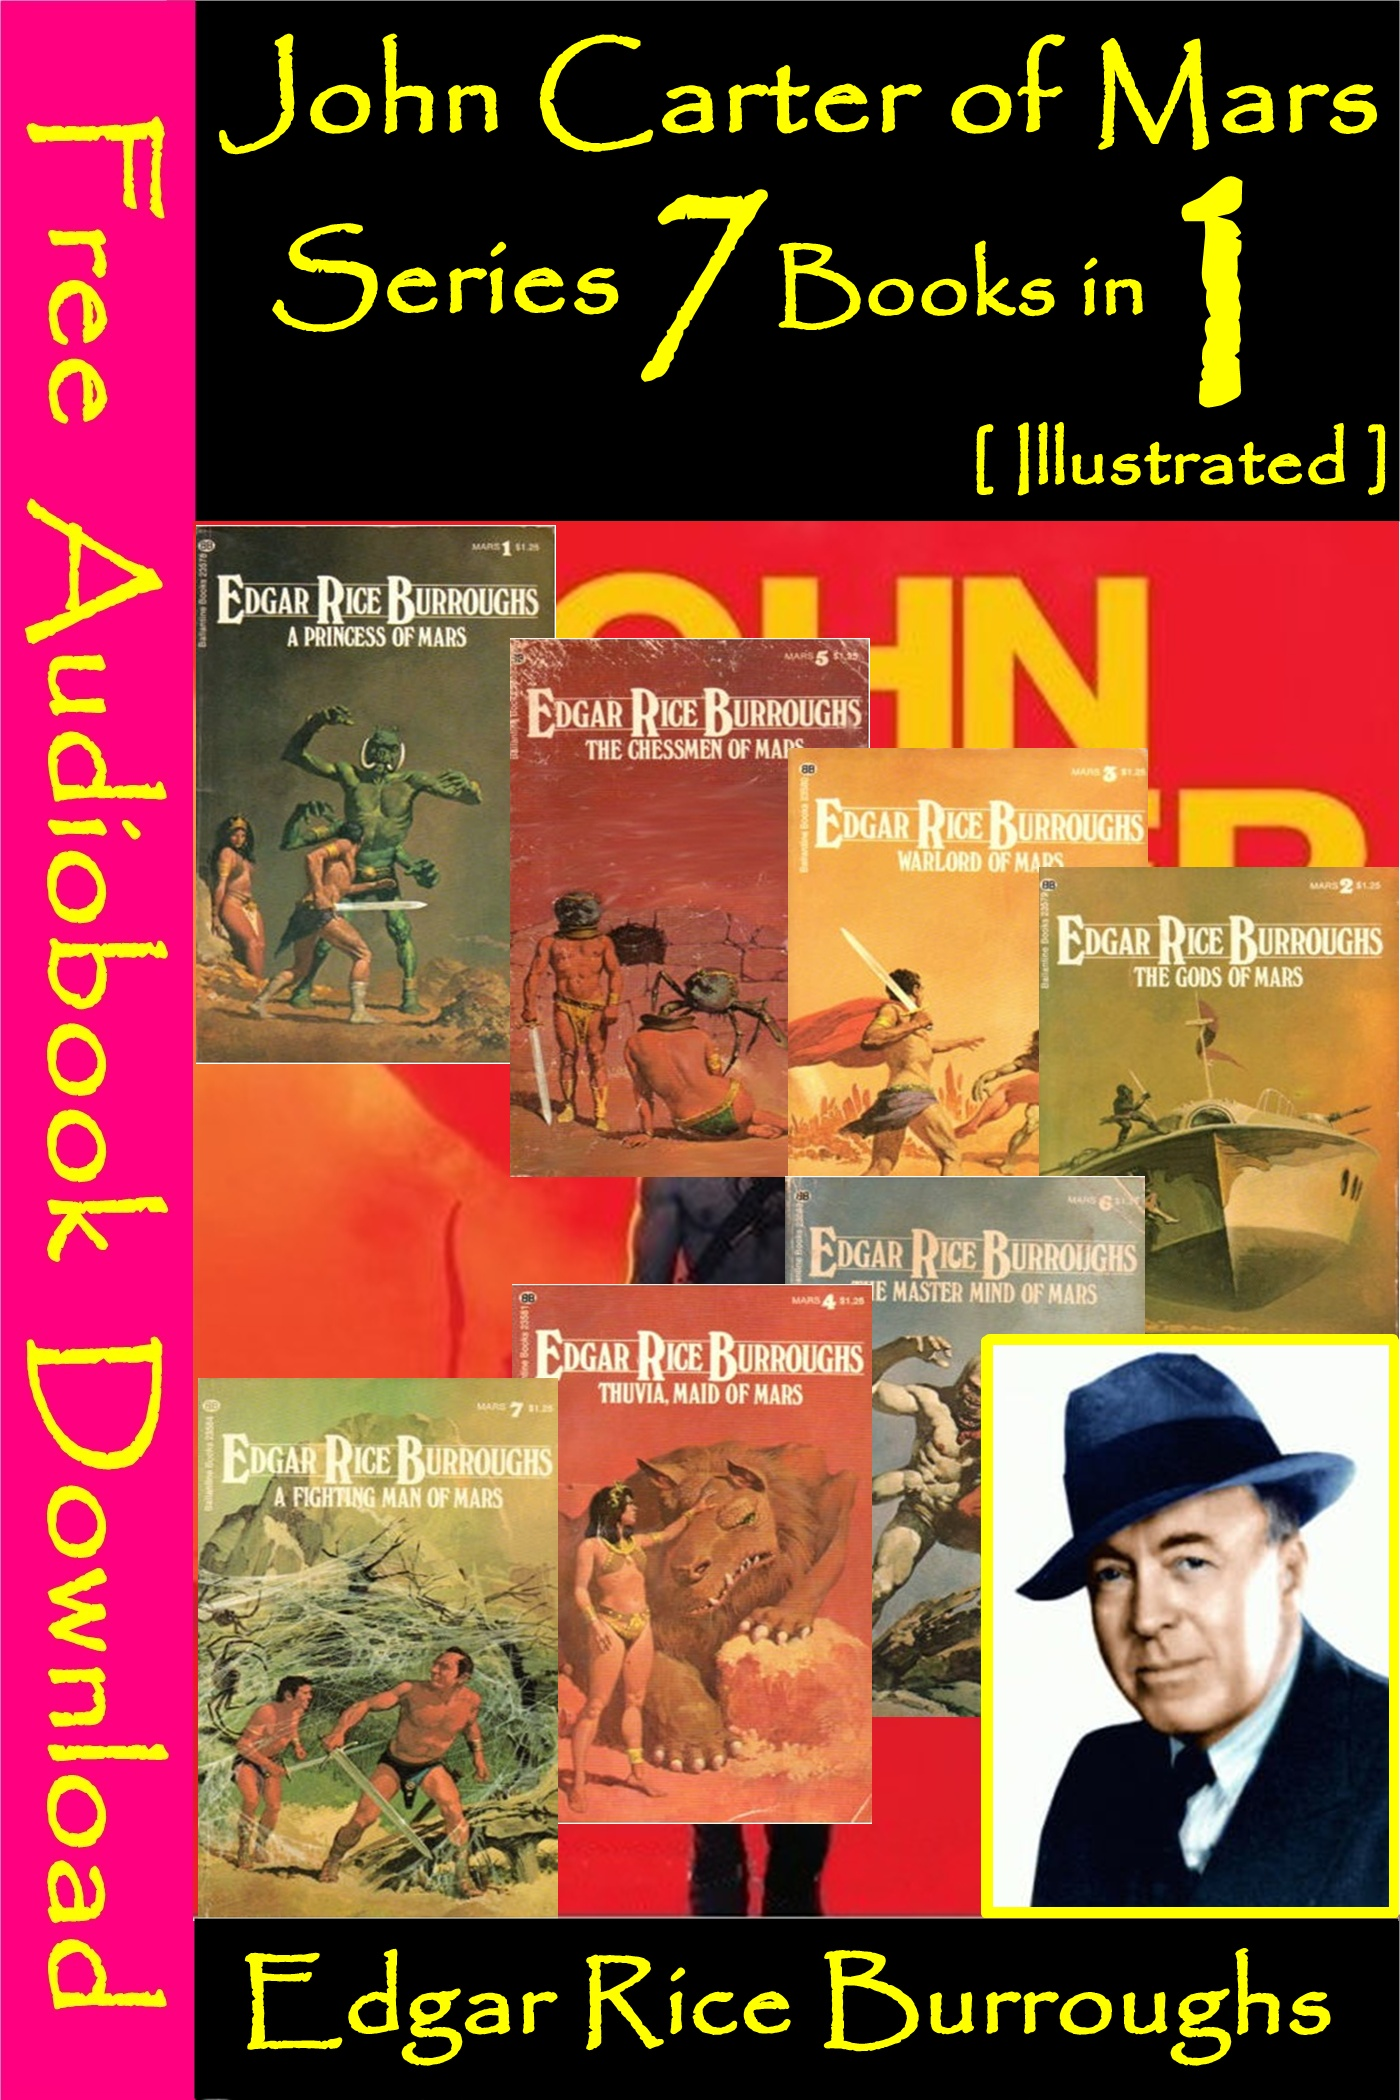 Edgar Rice Burroughs - John Carter of Mars Series 7 Books in 1 [ Illustrated ]